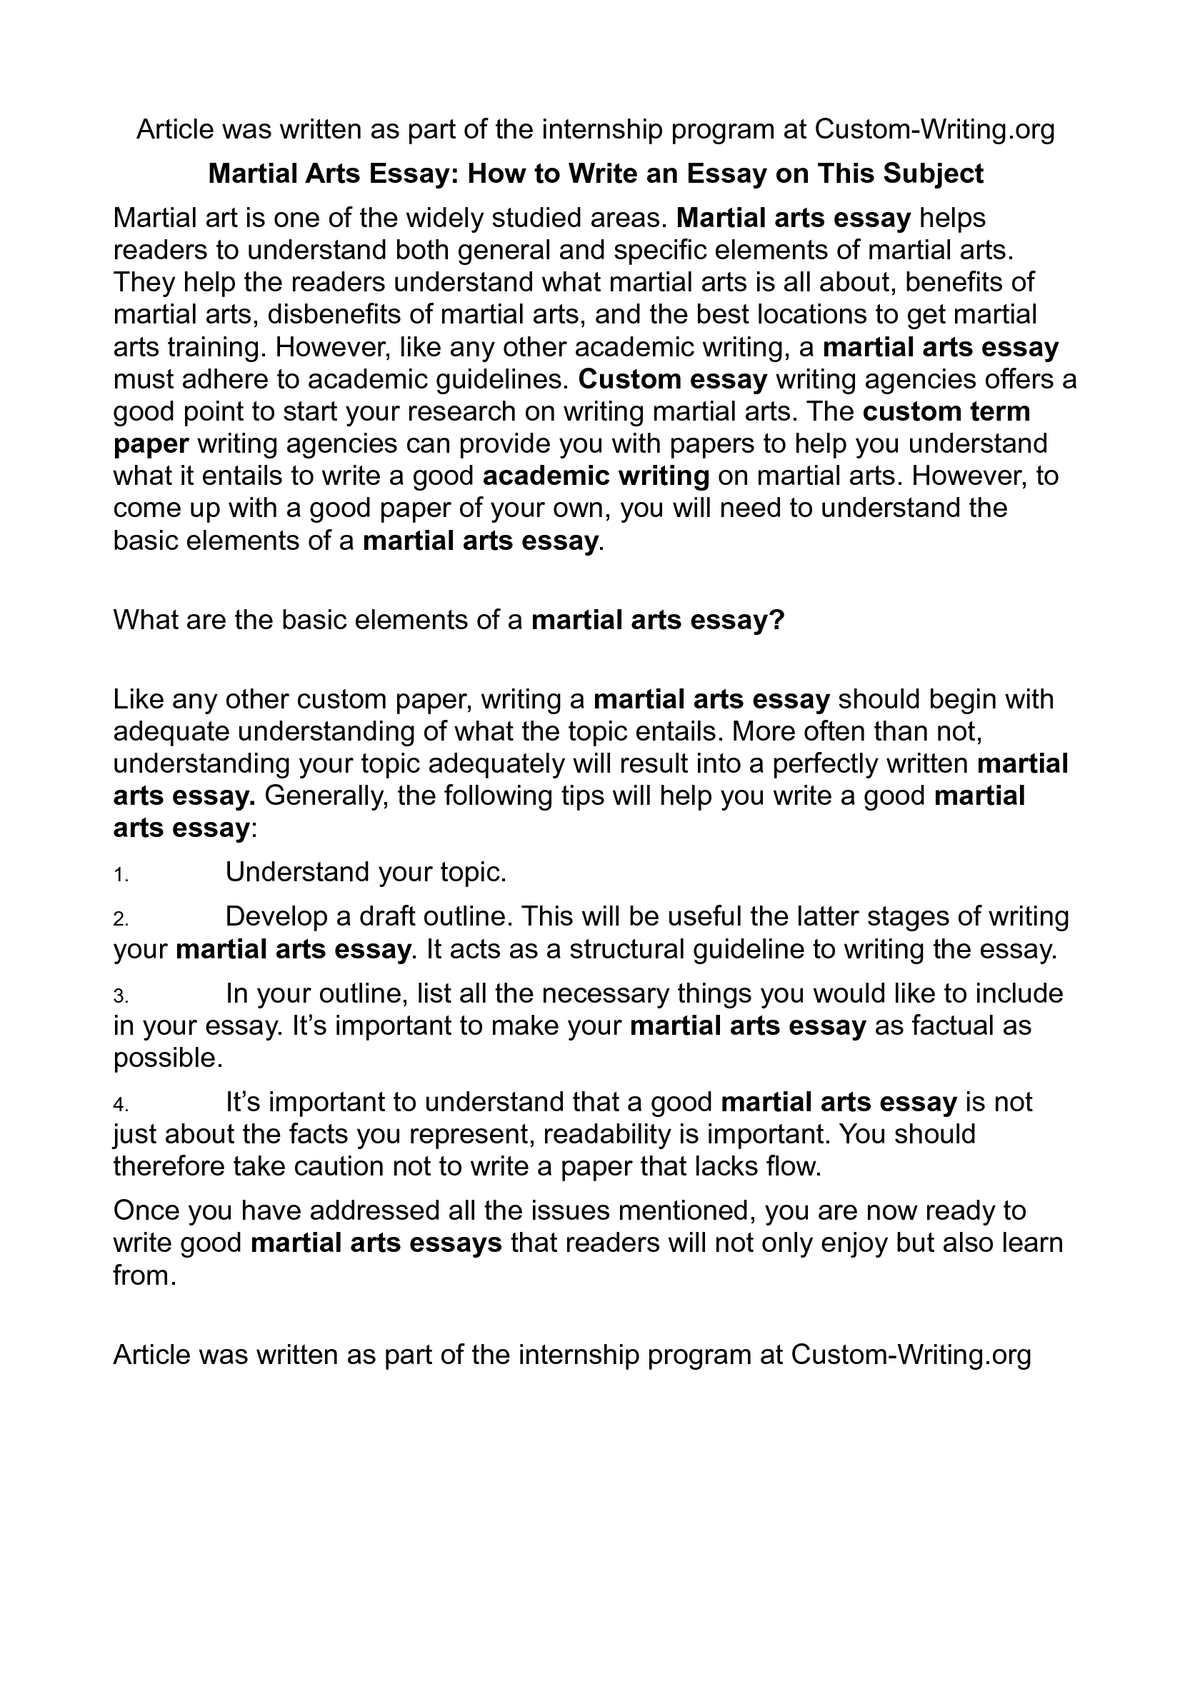 001 How To List Things In An Essay Example Why Is Writing Important Calam Eacute O Martial Arts What Not Write About Colle College Application Fearsome Correct Way Best Full